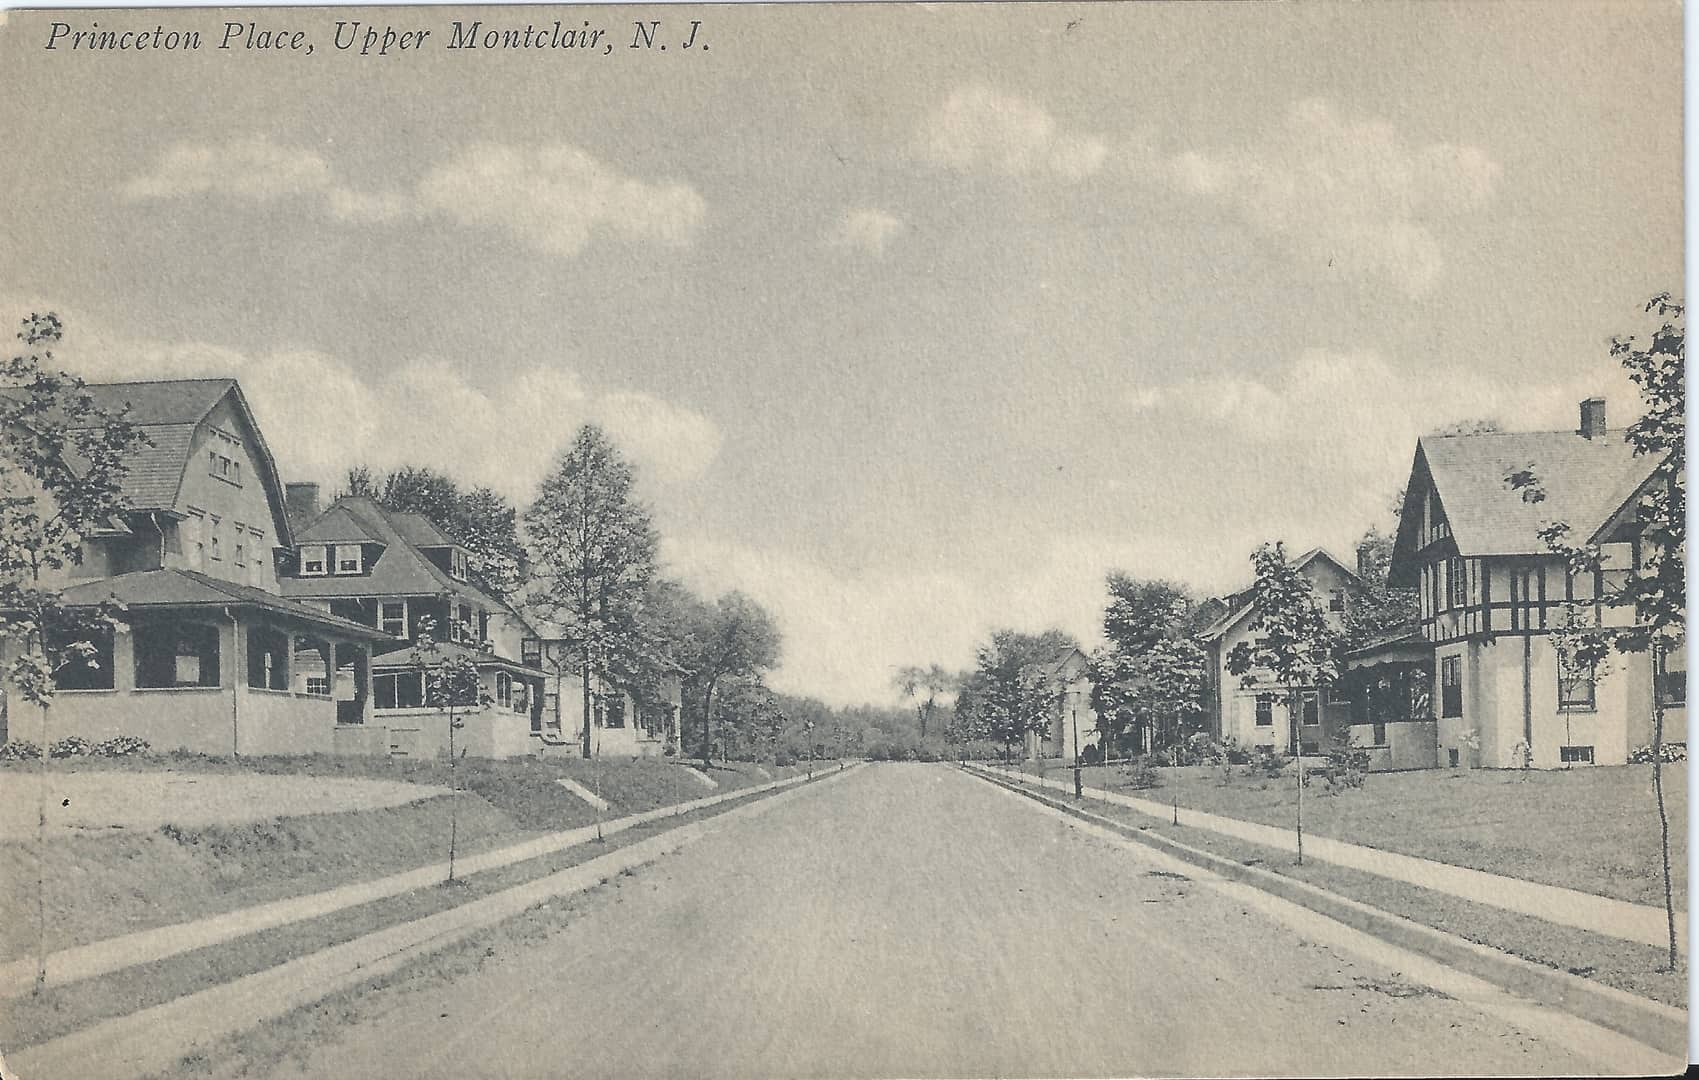 Postcard of Princeton Place, looking north from Godfrey Road. Interstate Publishing Company, New York, N.Y. Postmarked June 30, 1916.